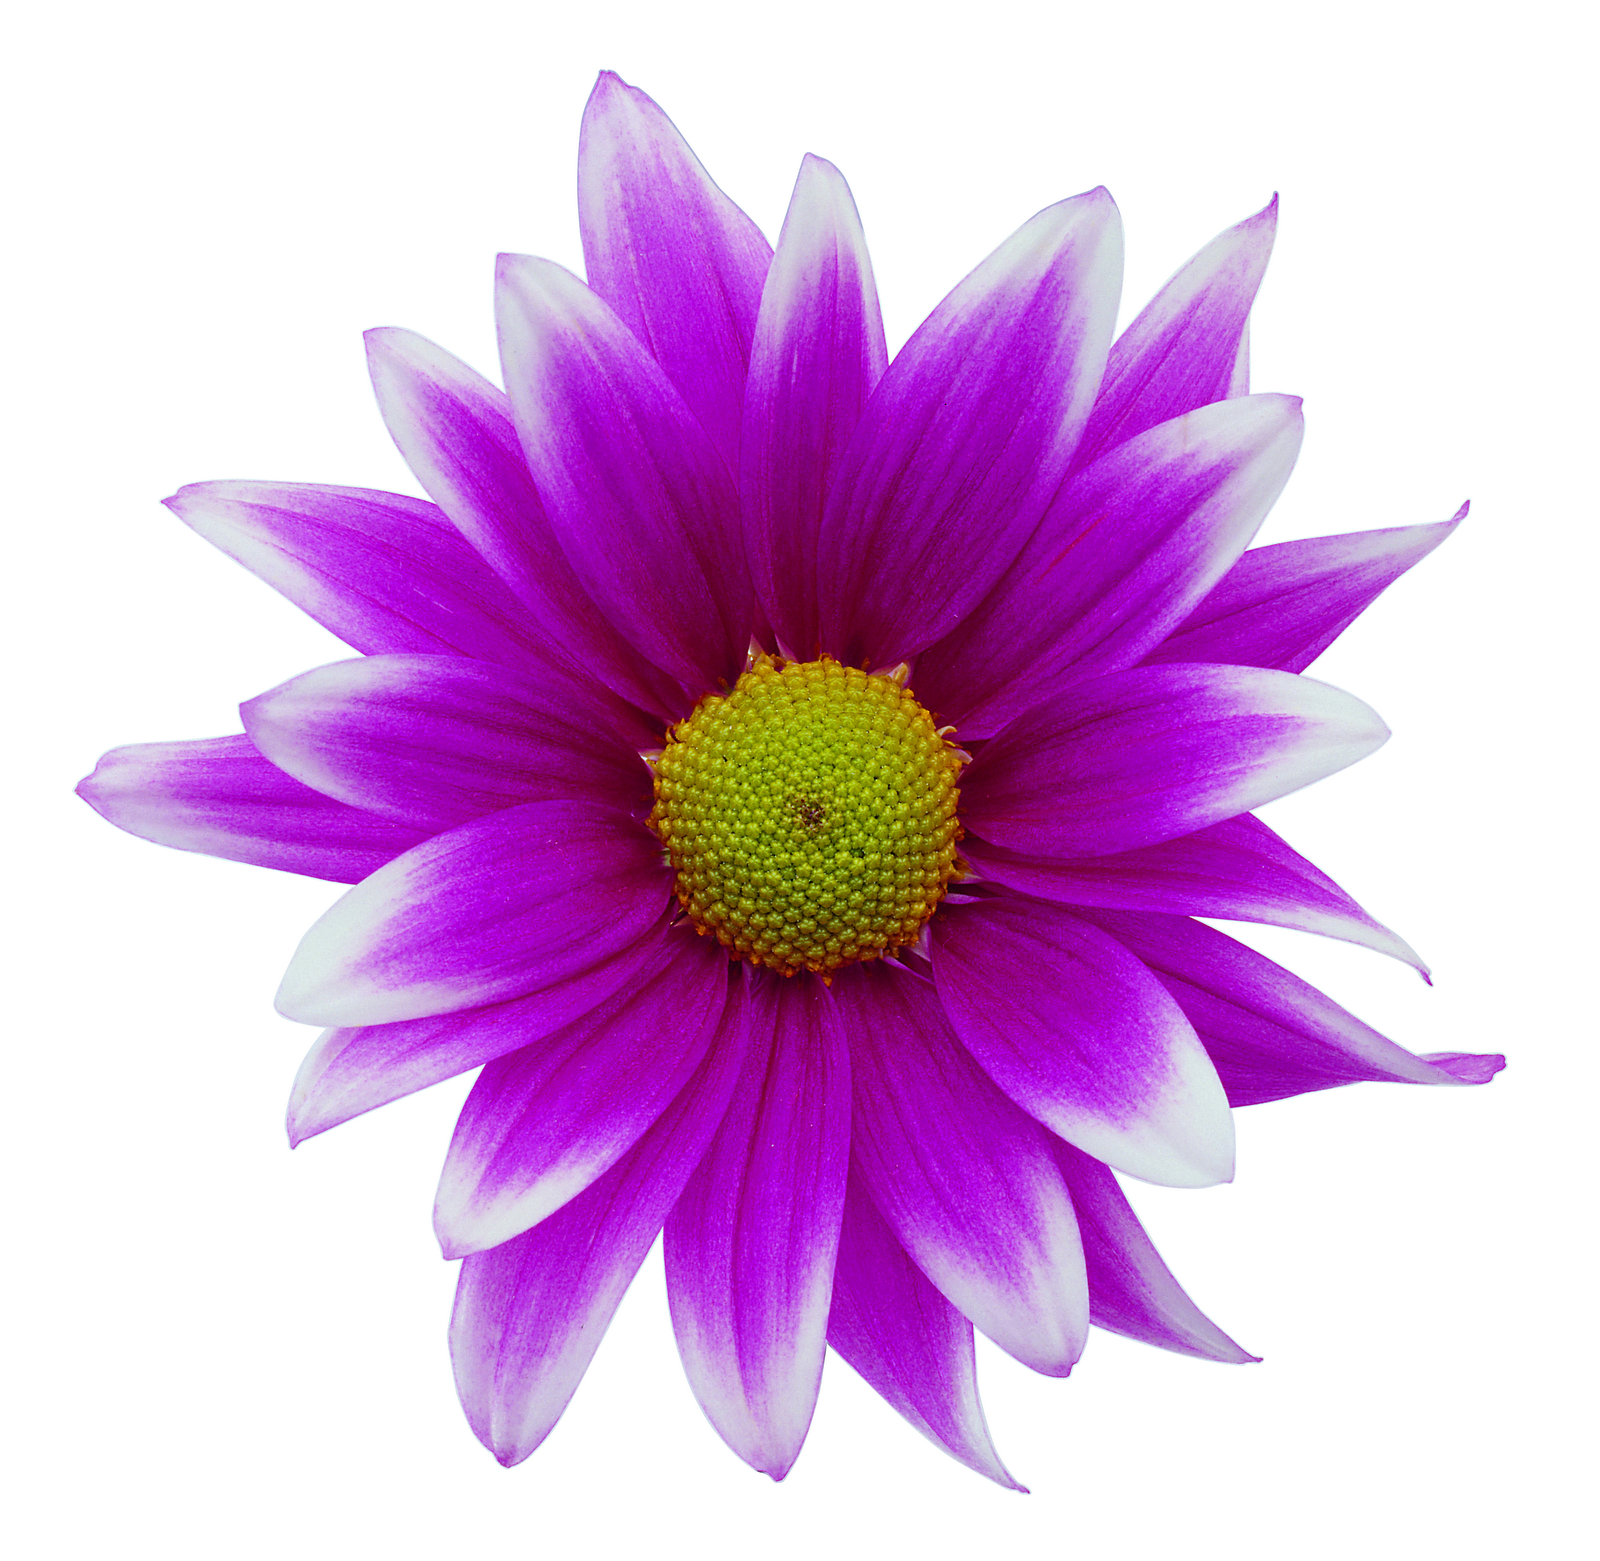 Purple Flower Png image #6210